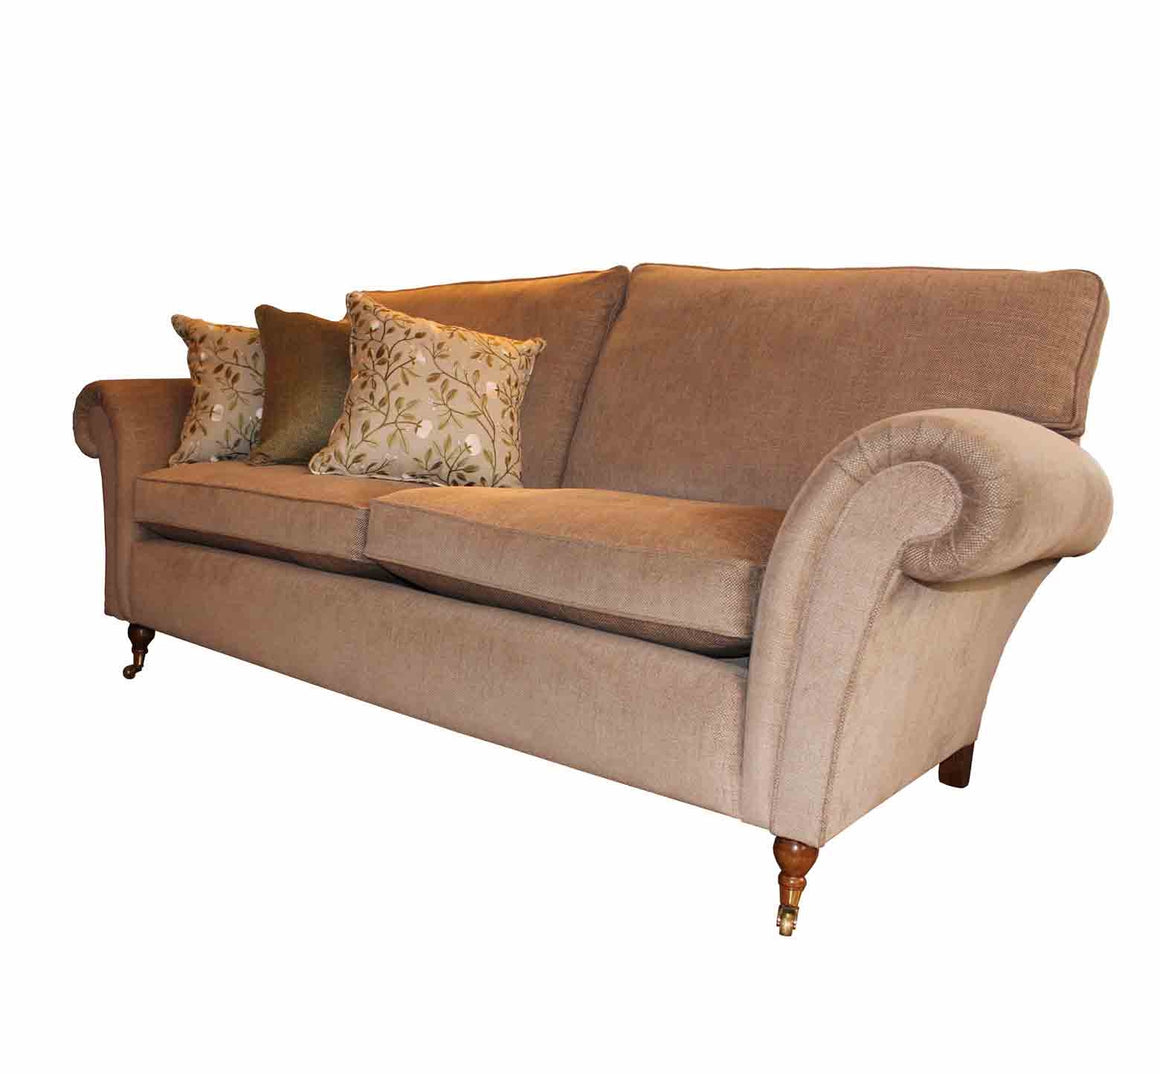 Henley Sofas and chairs in Linwood Iona HALF PRICE